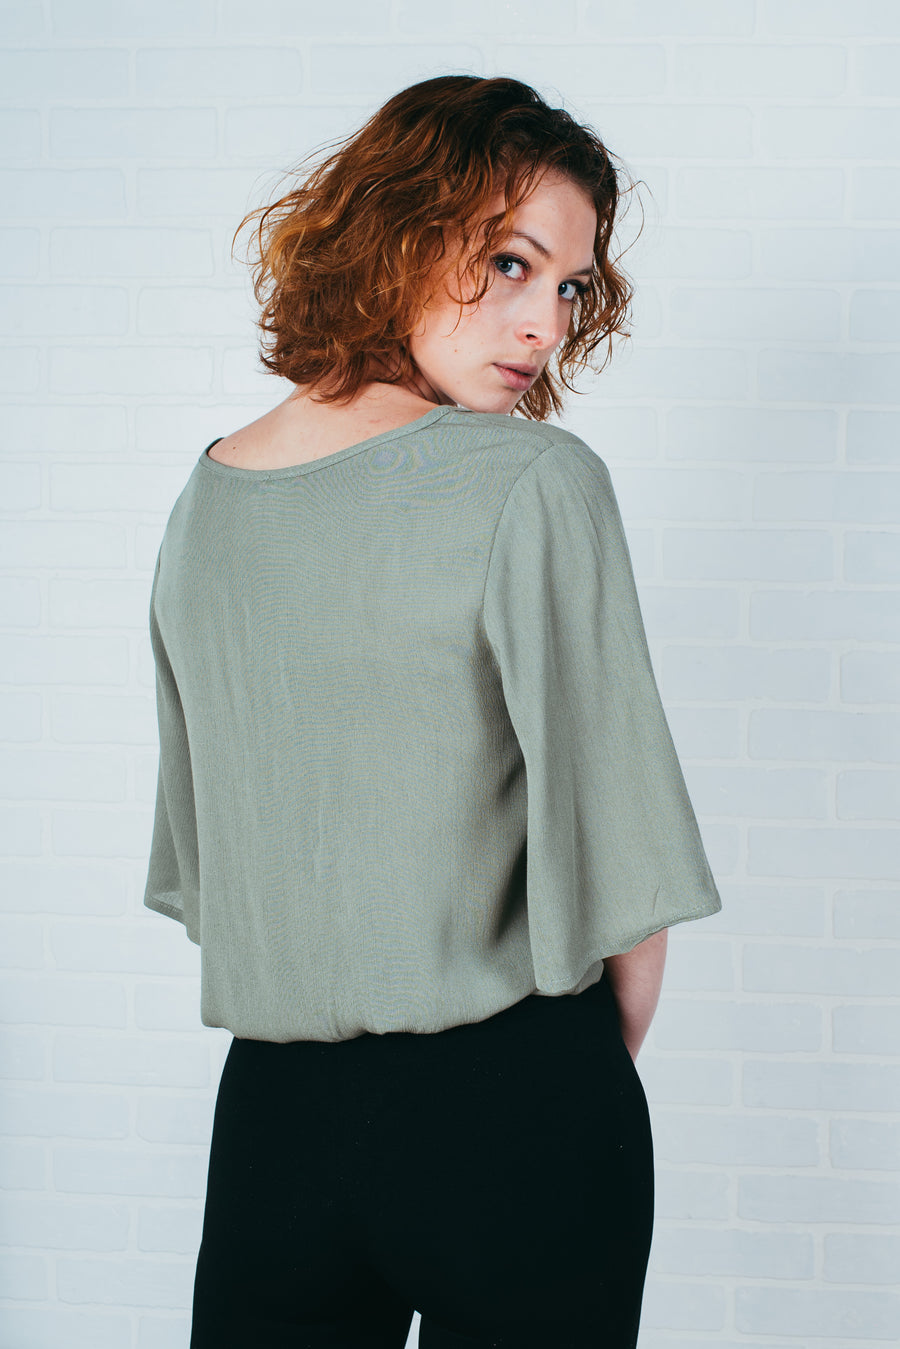 Le tricot armé col baveux/ Armed knit sweater with floppy collar